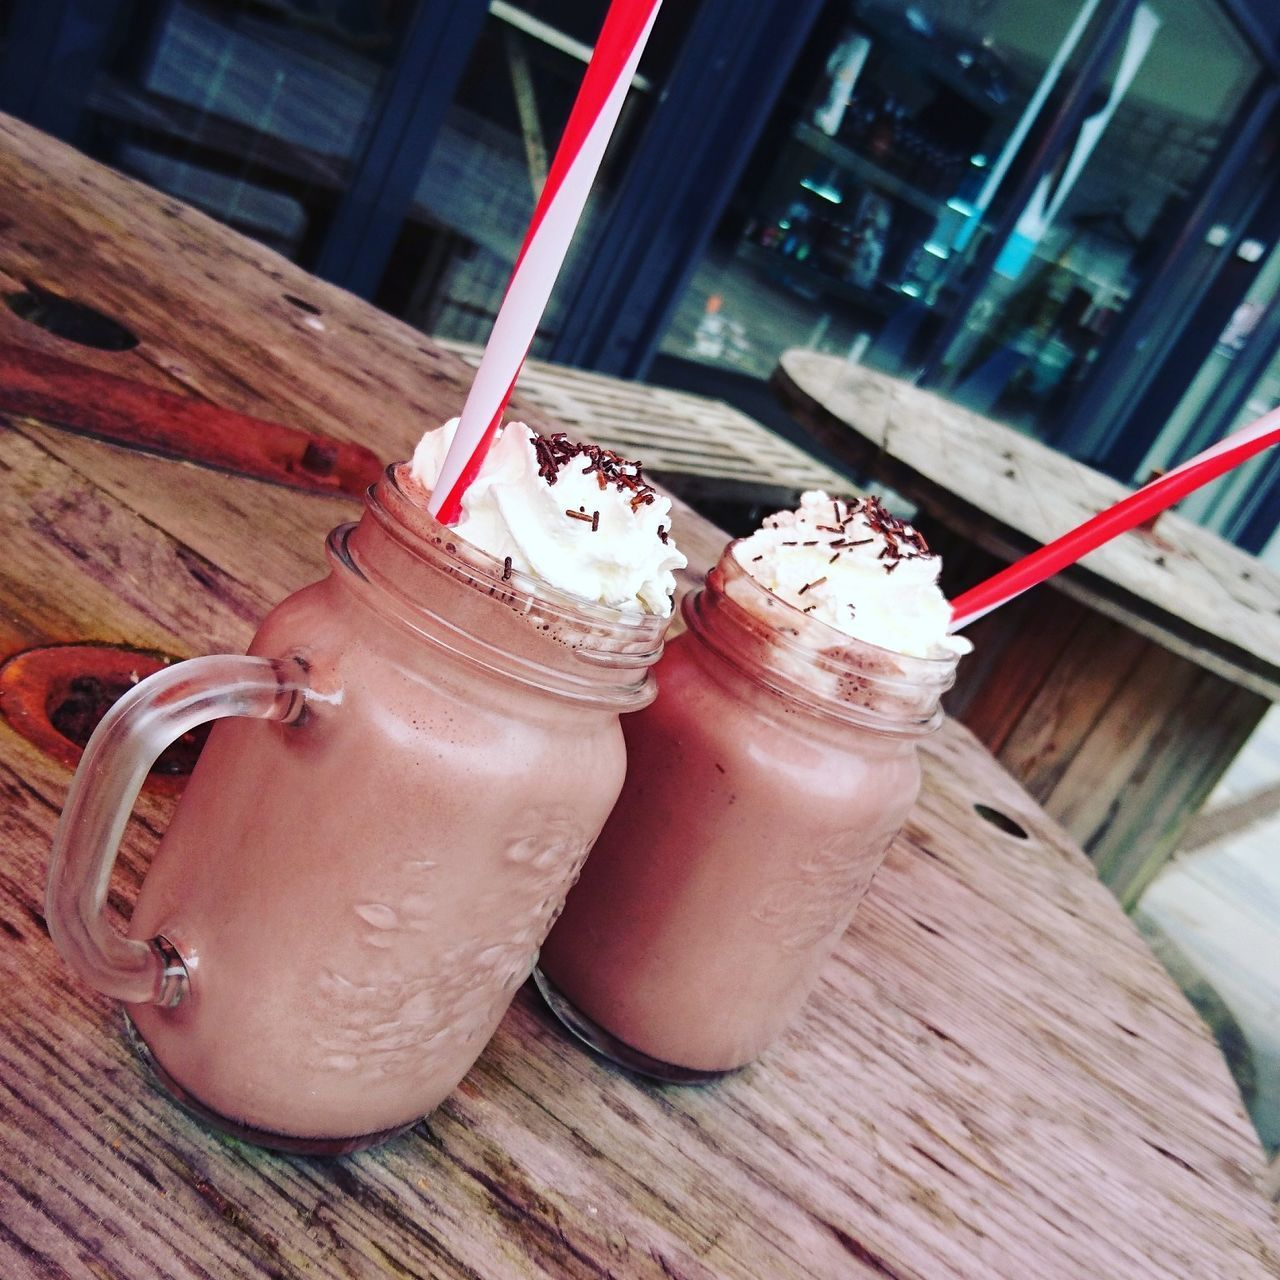 After a long walk.. We enjoyed the rewards.. MILKSHAKES .. Drink Drinking Straw Drinking Glass Food And Drink Milkshake Smoothie Freshness Milk No People Dairy Product Refreshment Table Indoors  Close-up Raspberry Blended Drink